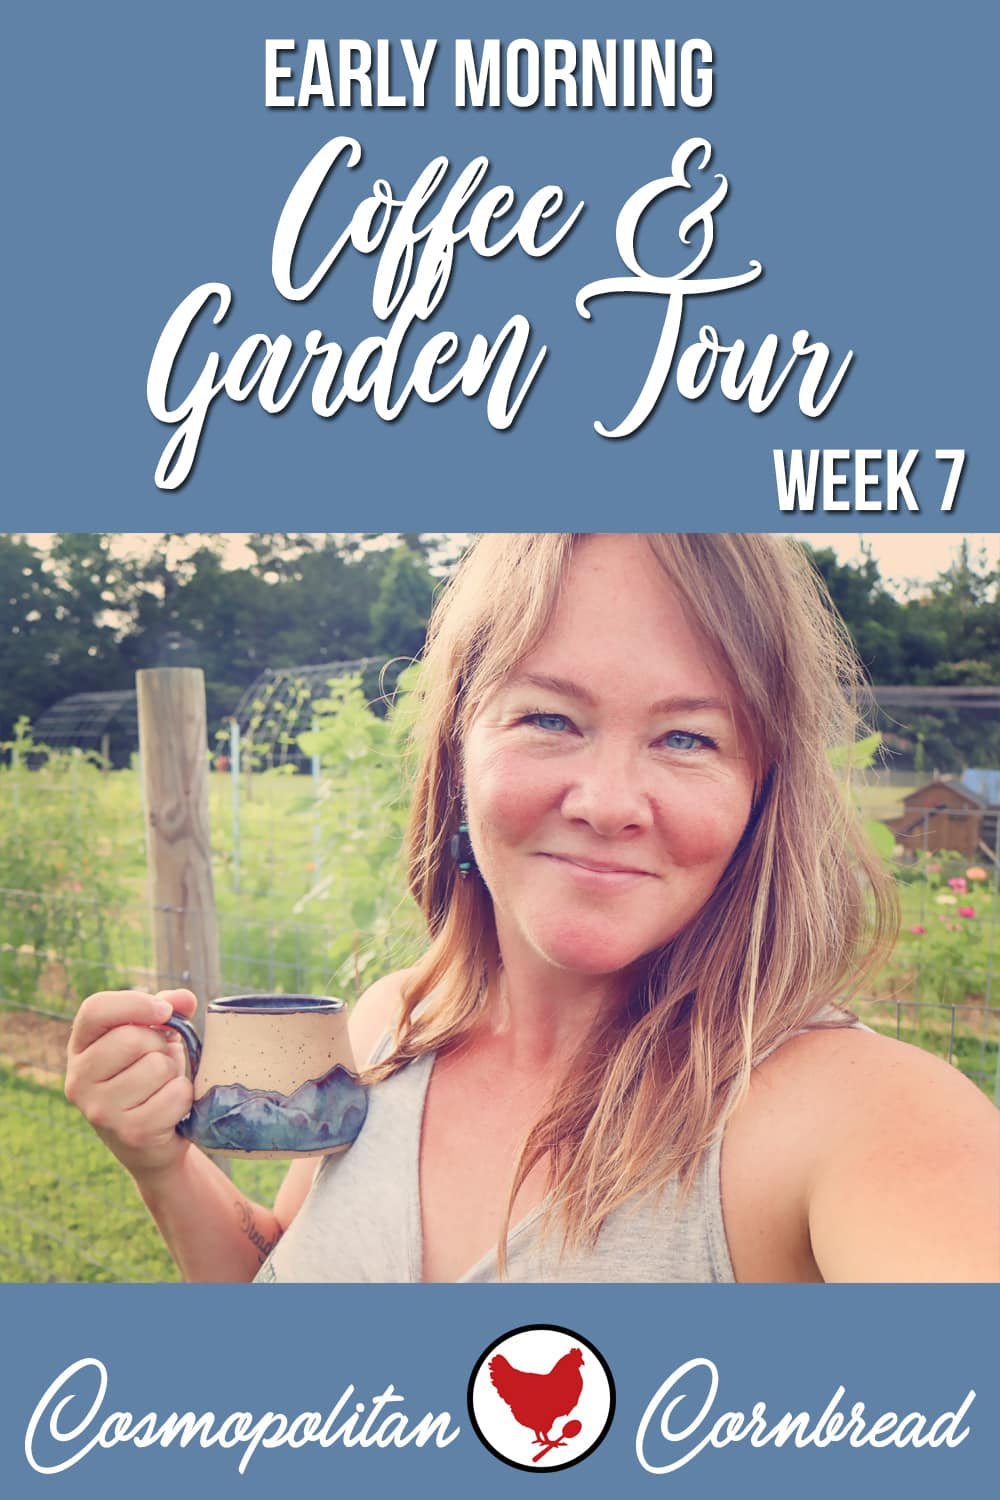 It is week 7 of the potager garden tours, and some things are coming along, some things are struggling, and a couple things are done for.